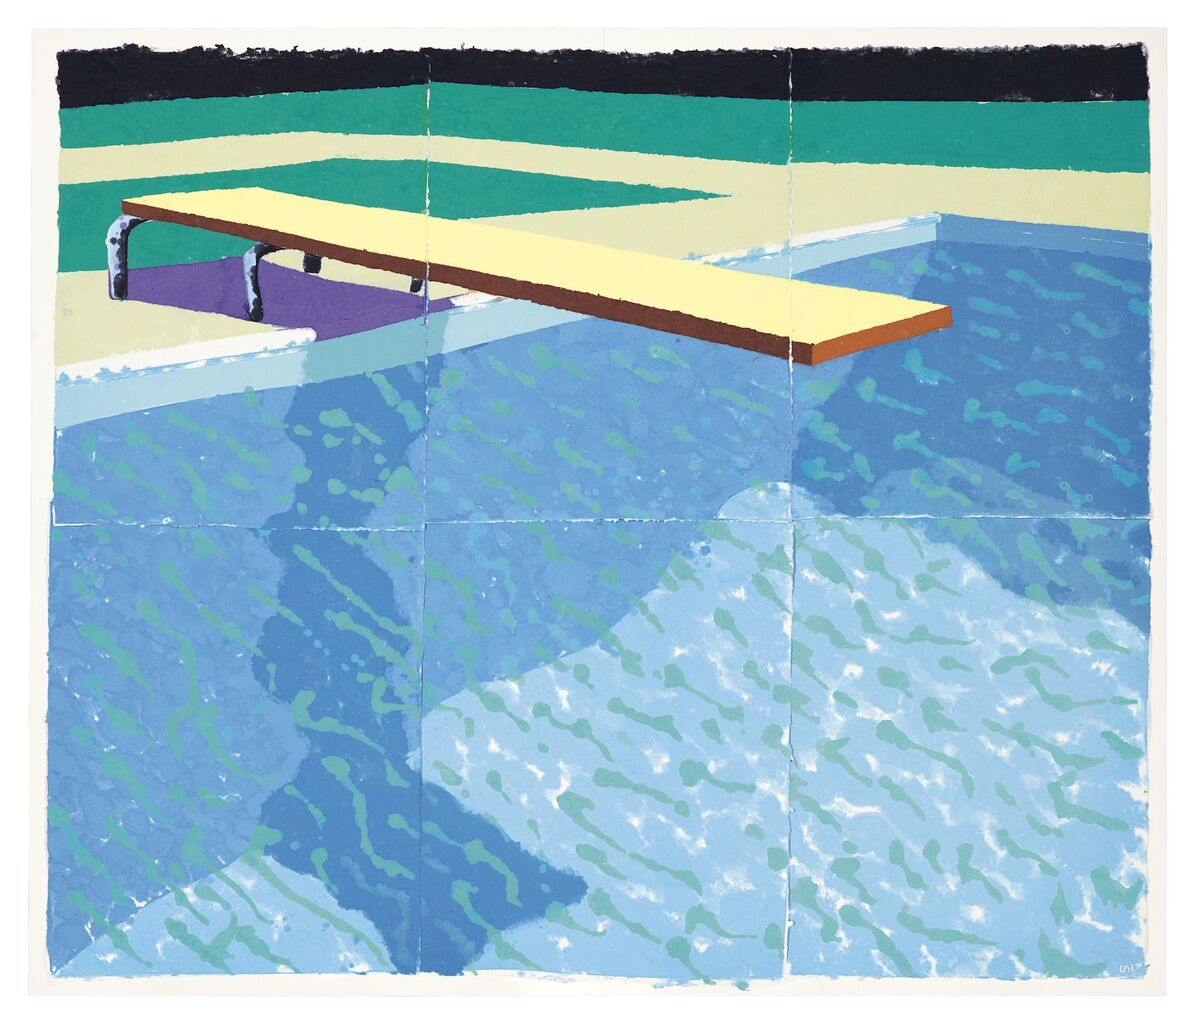 David Hockney, Sprungbrett mit Schatten (Paper Pool 14), 1978, pigment in paper pulp on six joined sheets. Image courtesy Christie's Images Ltd. 2018